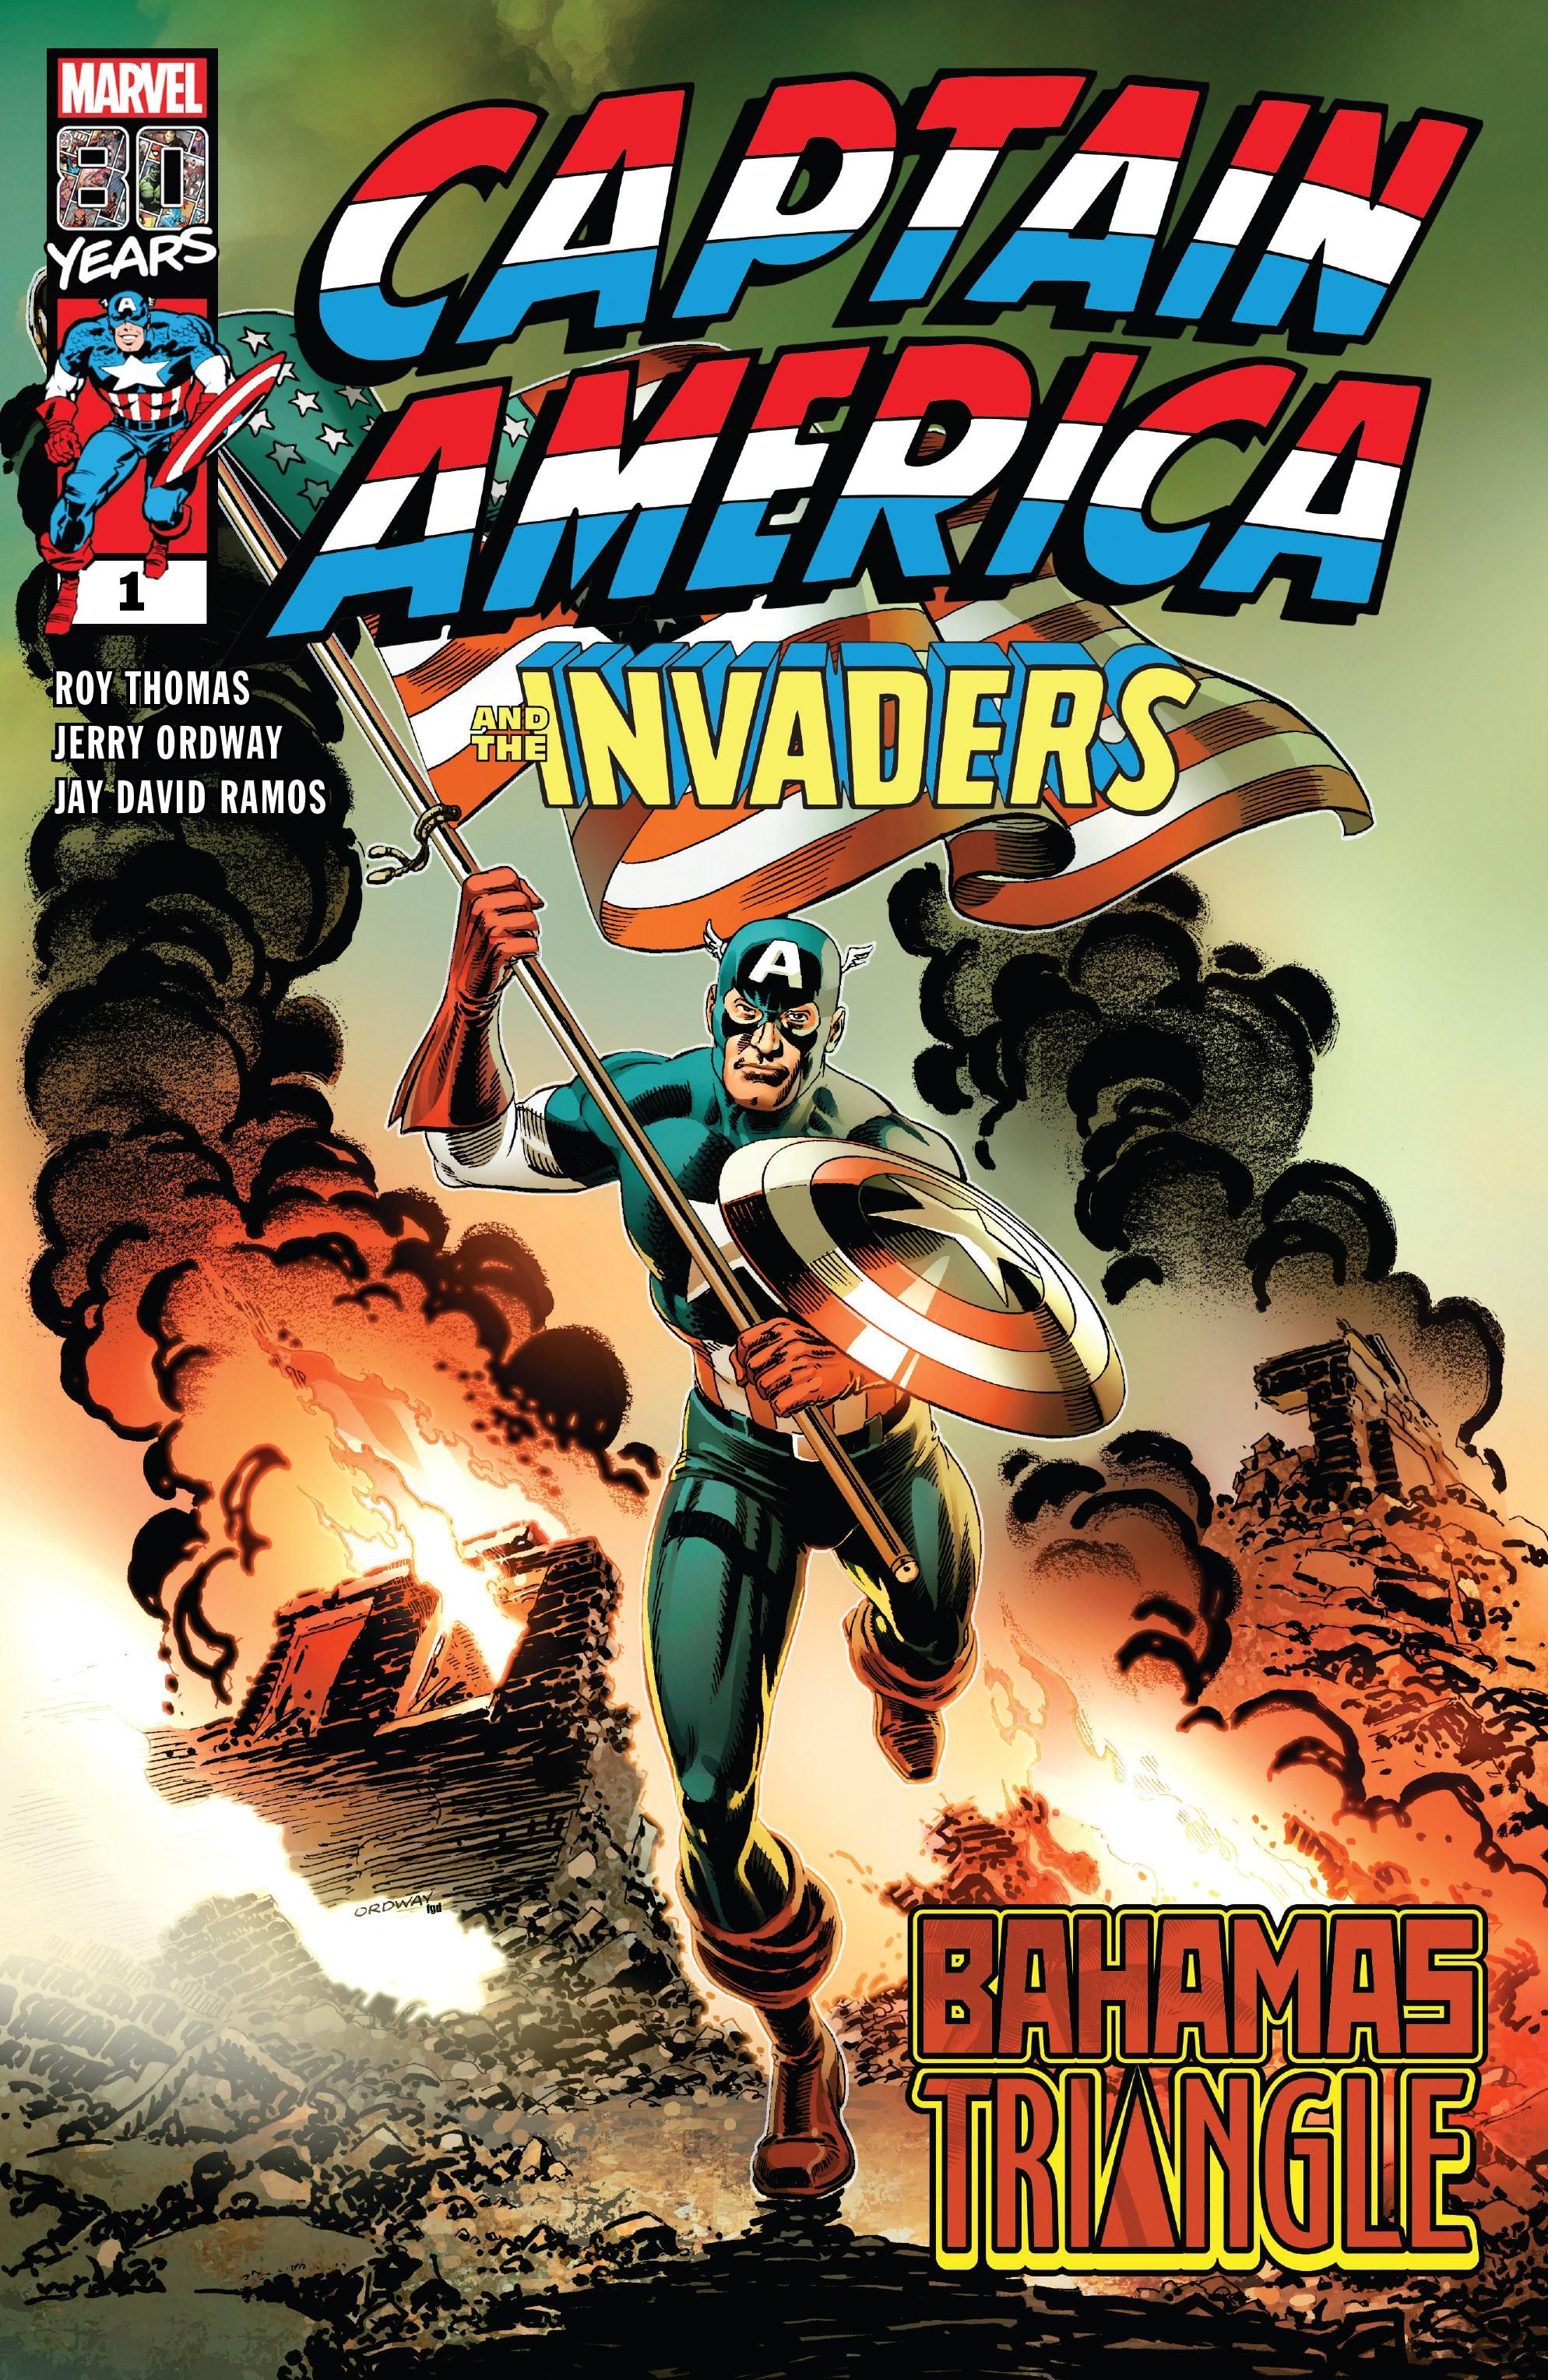 Captain America & the Invaders: Bahamas Triangle Vol 1 1